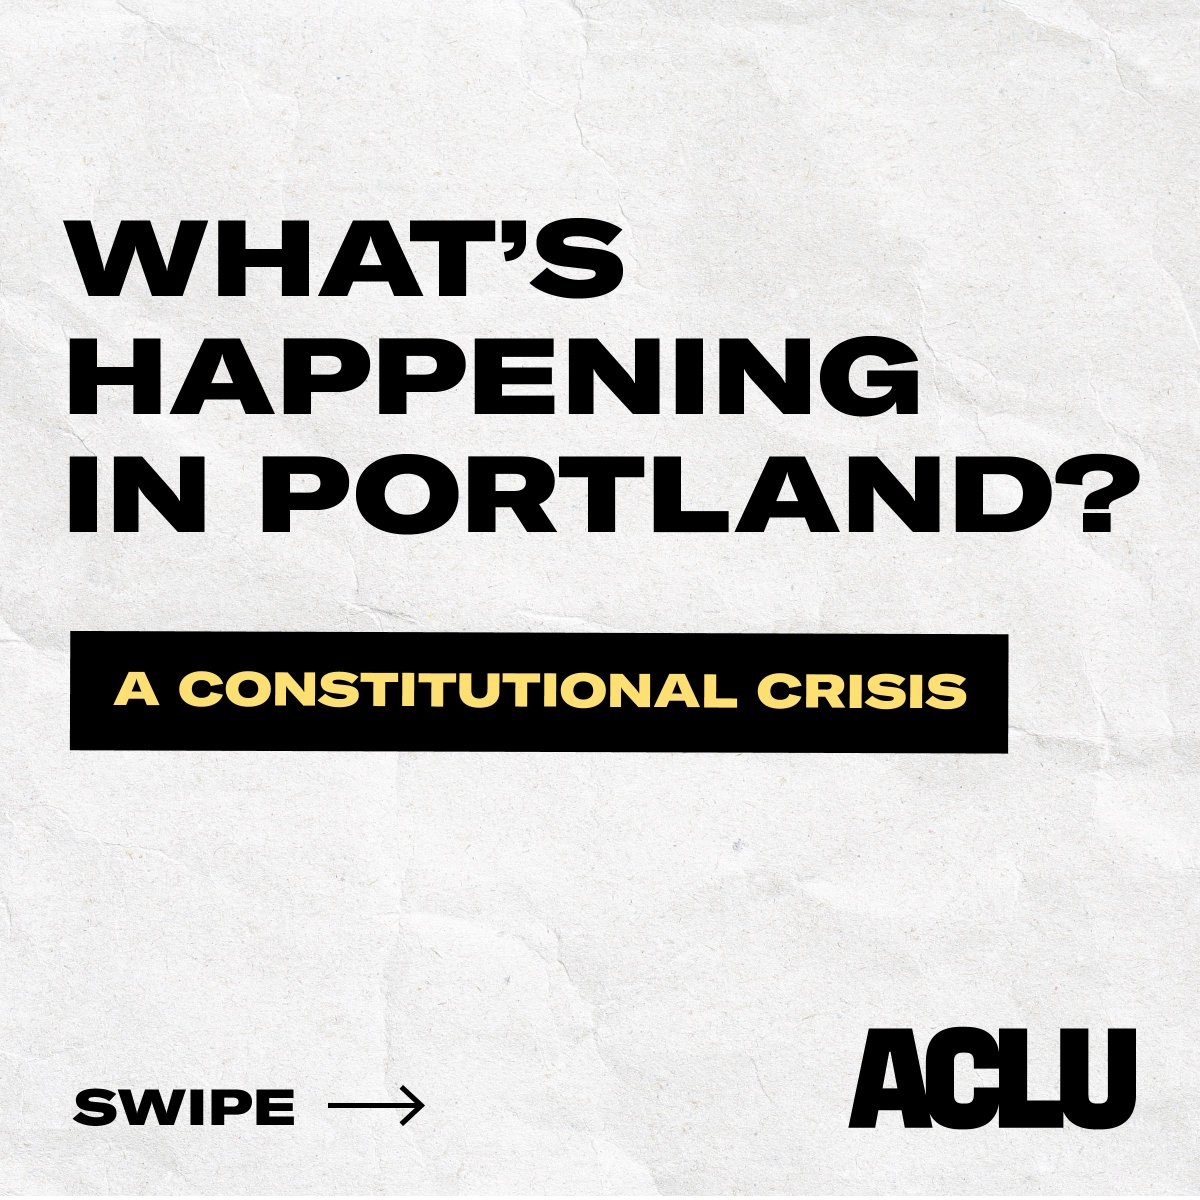 Get up to speed on the unconstitutional crackdown on protesters' rights. We can't allow this to continue in Portland — or anywhere else. https://t.co/EclDFfQgwM